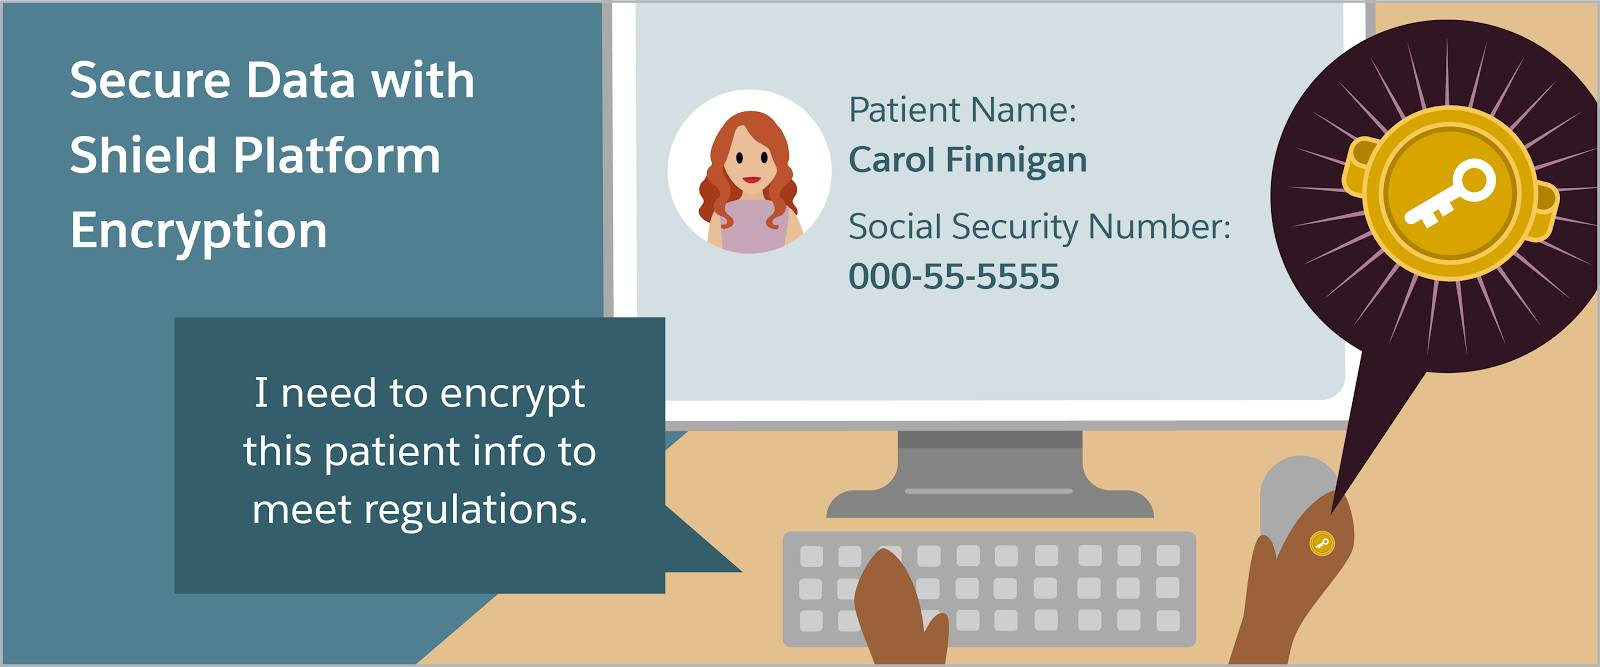 "Secure data with shield platform encryption: Someone sitting at a keyboard saying, ""I need to encrypt this patient info to meet regulations"""